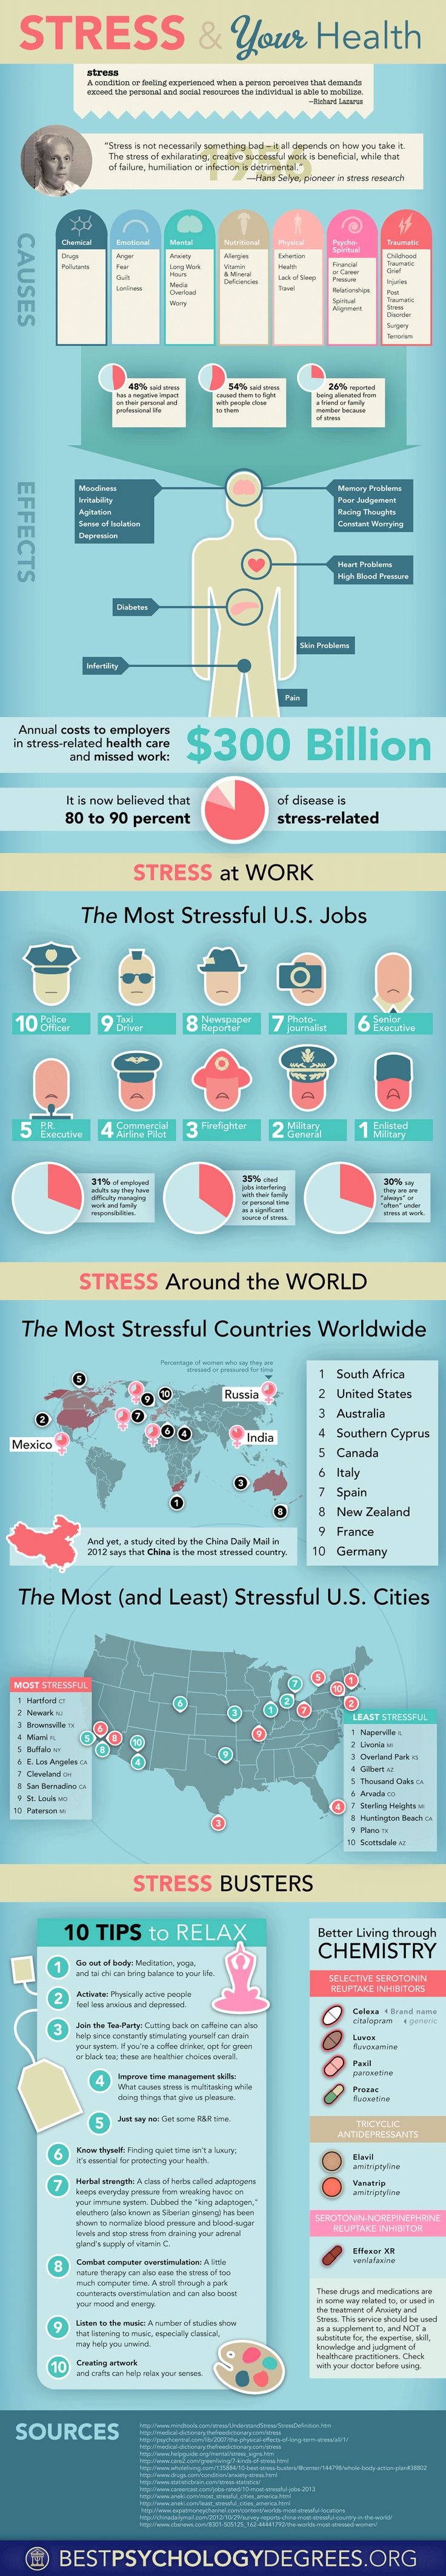 Stress & Your Health